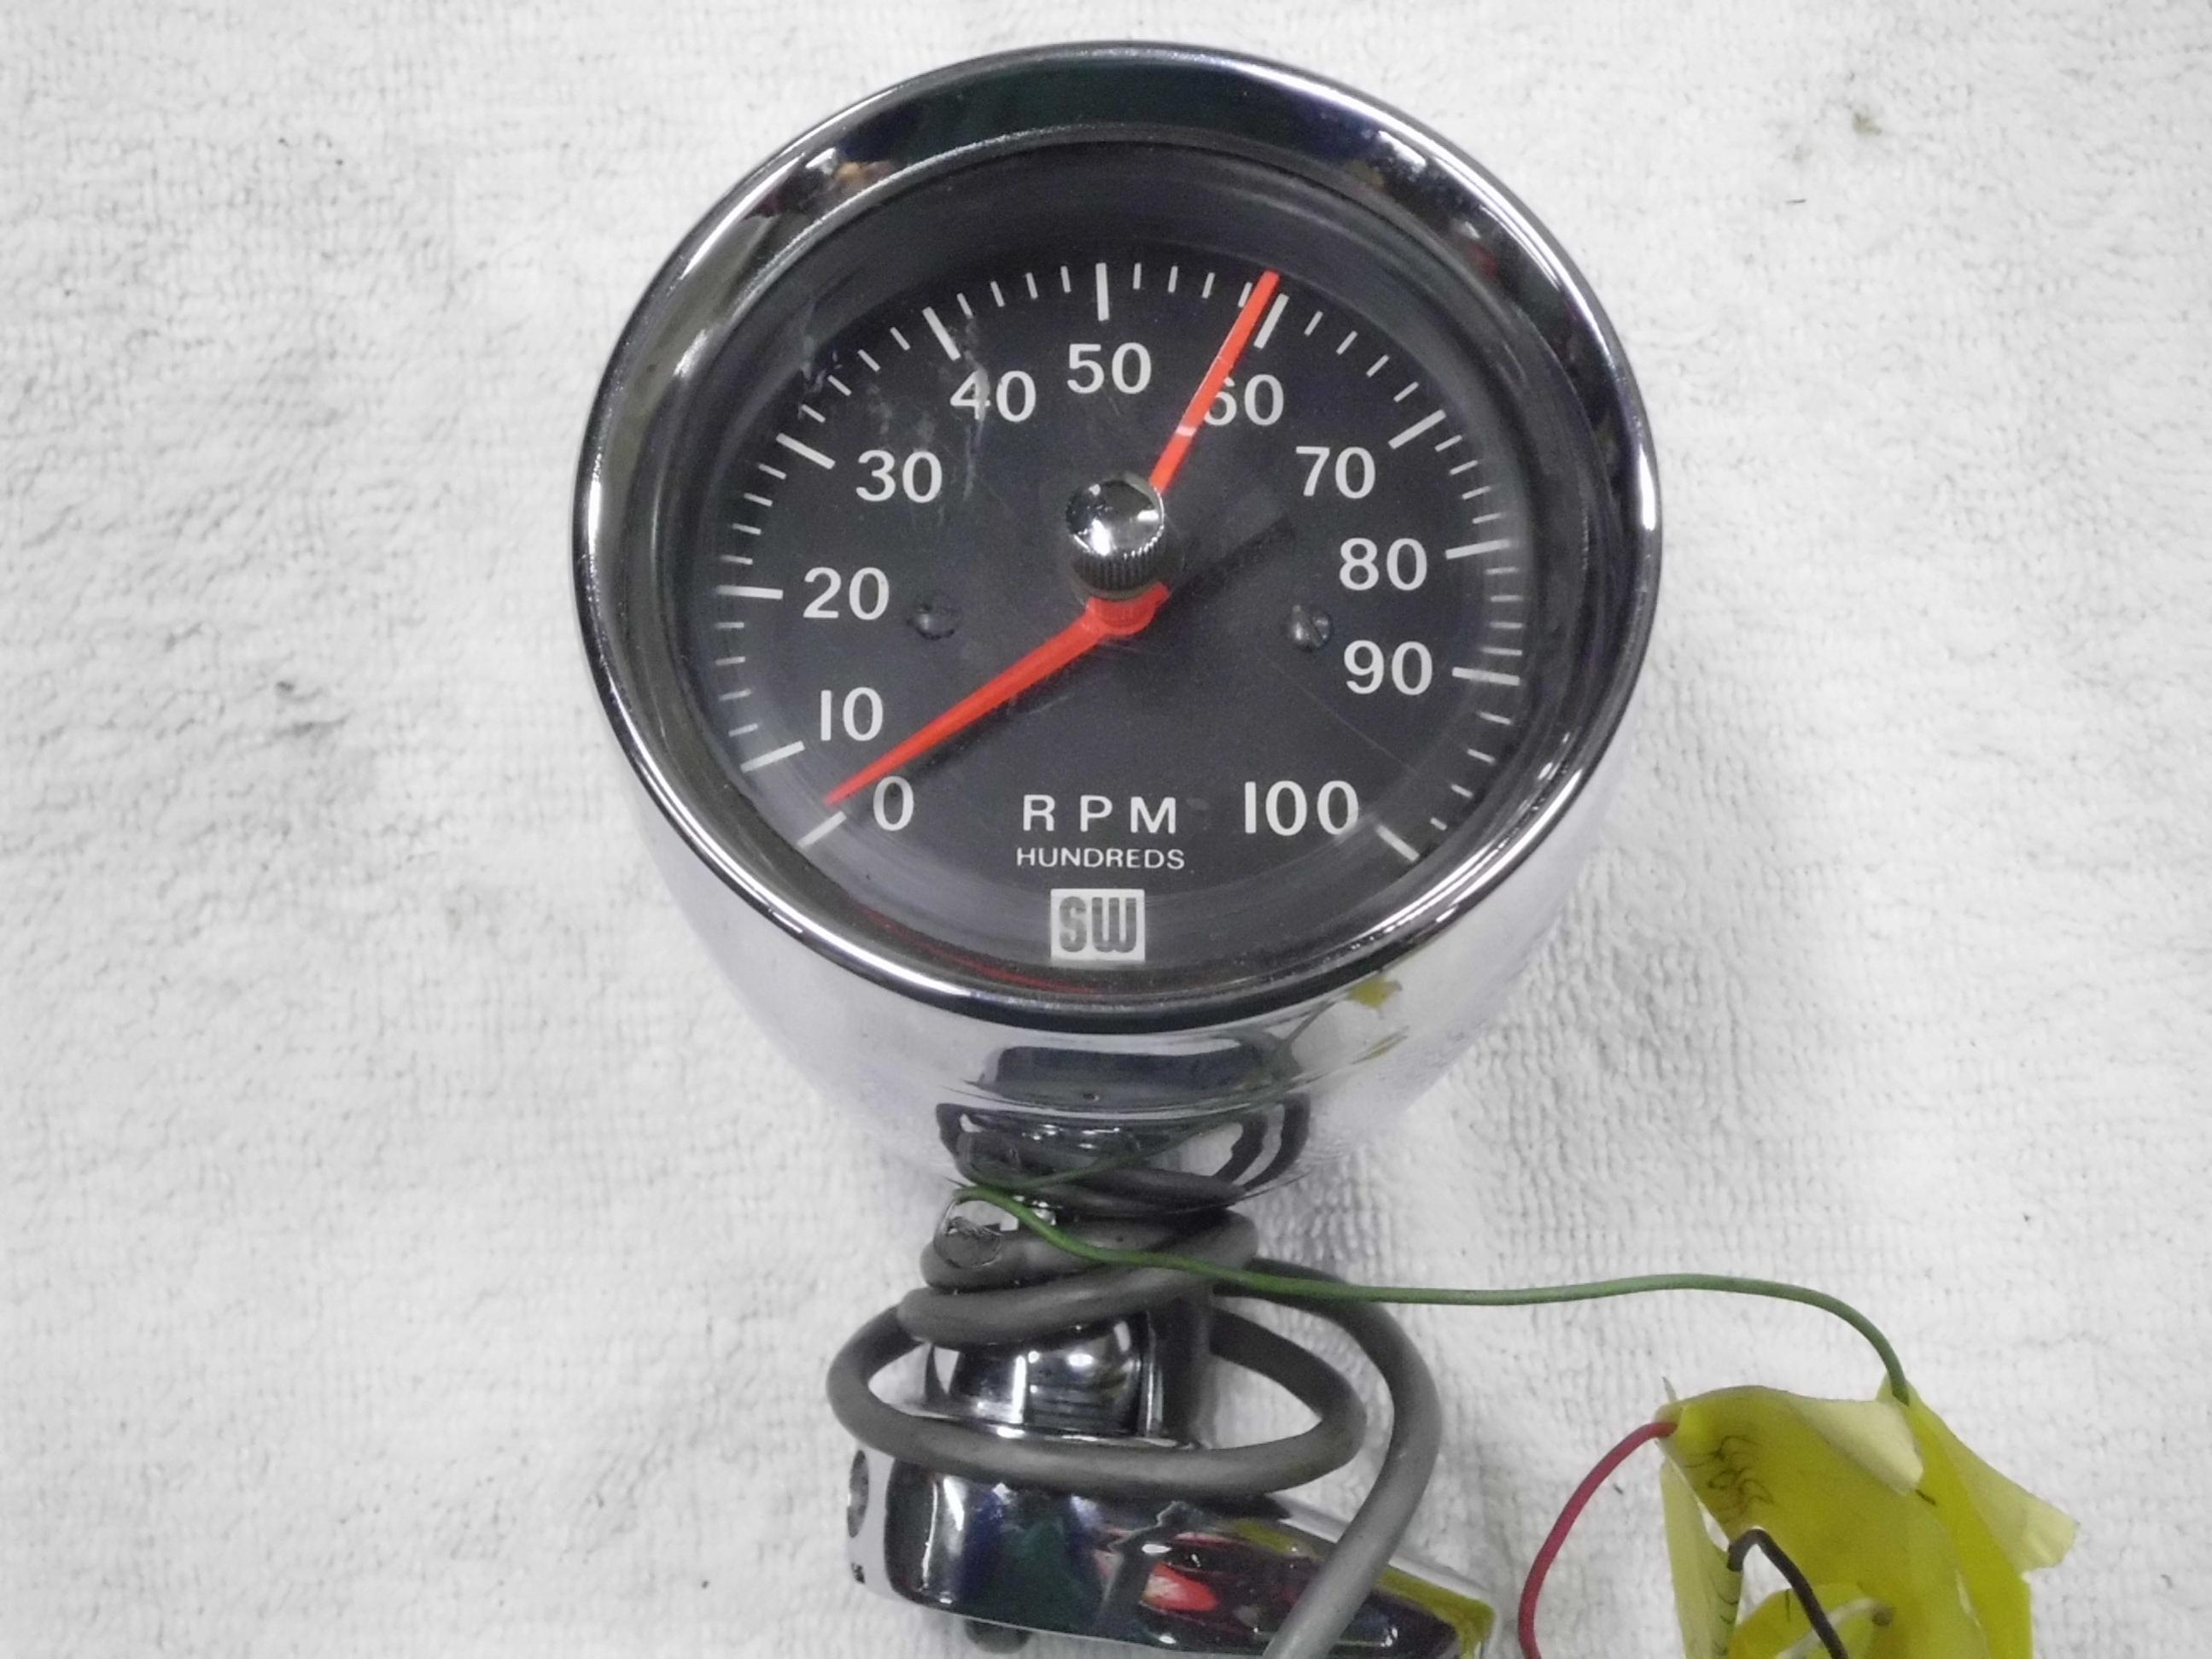 stewart warner tachometer wiring diagram wiring diagram and hernes,Stewart Warner Wiring Diagrams